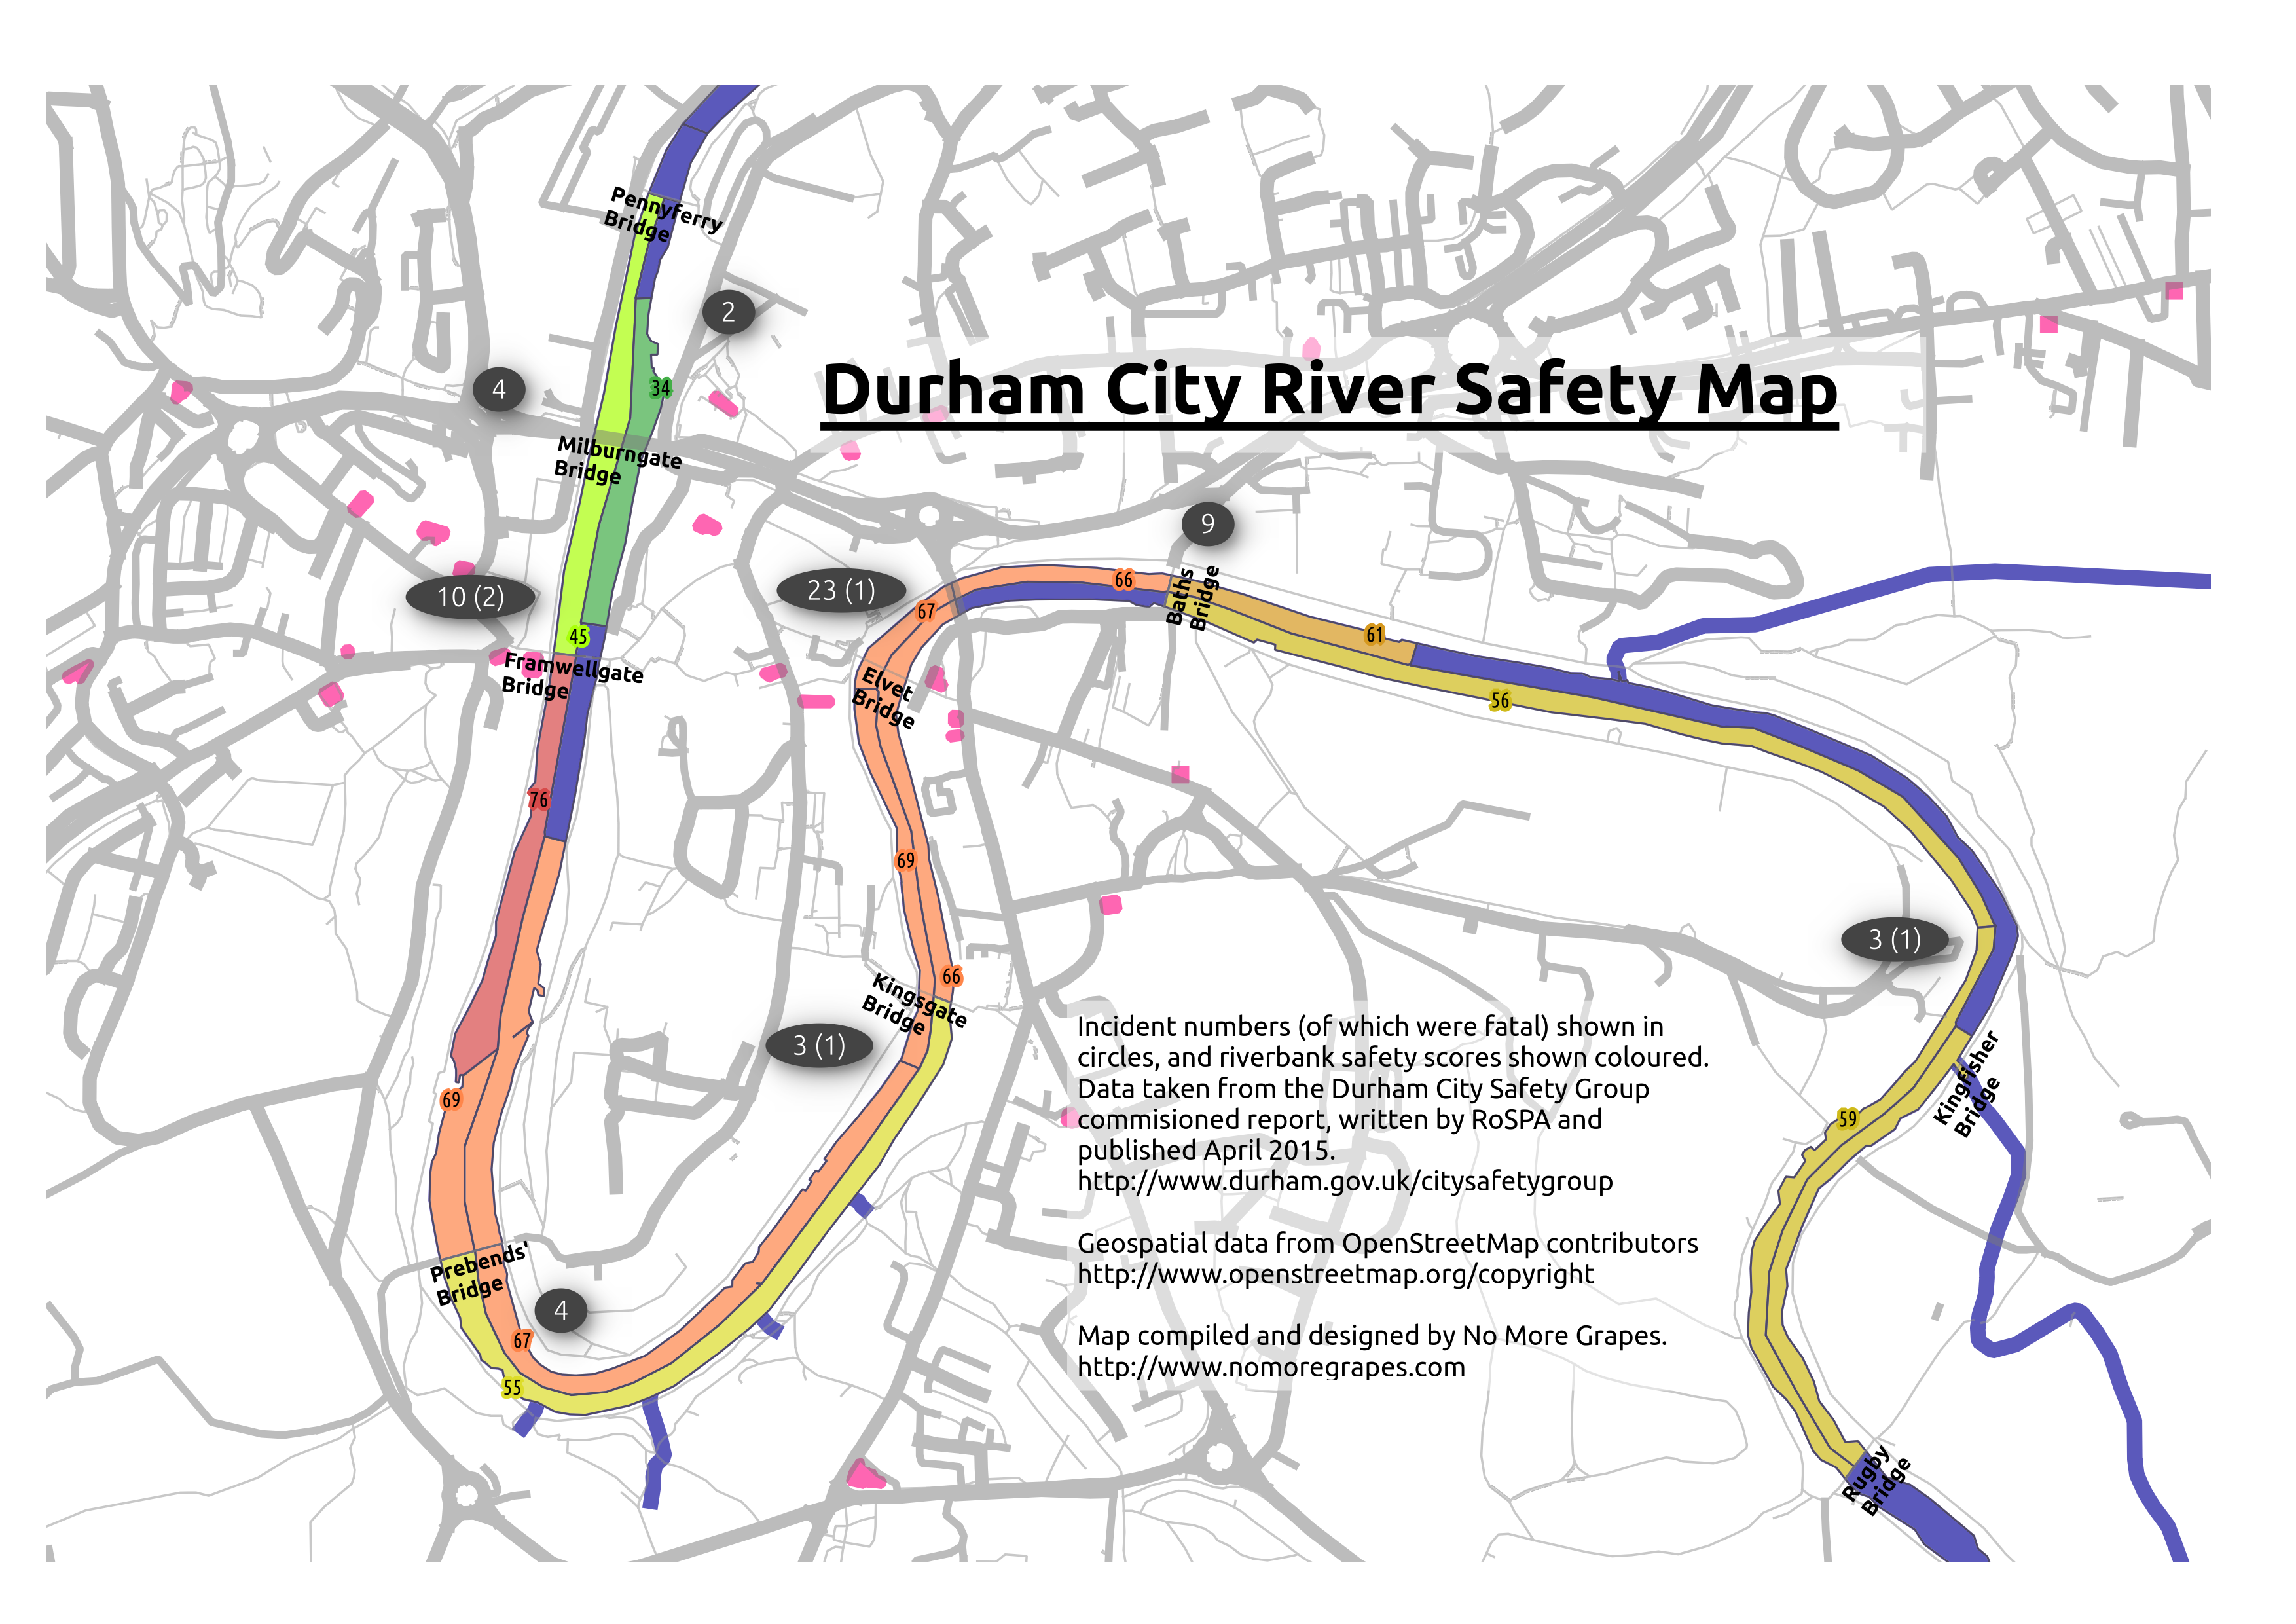 Local blogger produces Durham river safety map | The Bubble on springfield interchange map, end map, seattle to san francisco map, evacuation map, cad map, service map, art bus map, signal map, utility map, night market map, patent map, water supply map, traffic control map, mine rescue map,